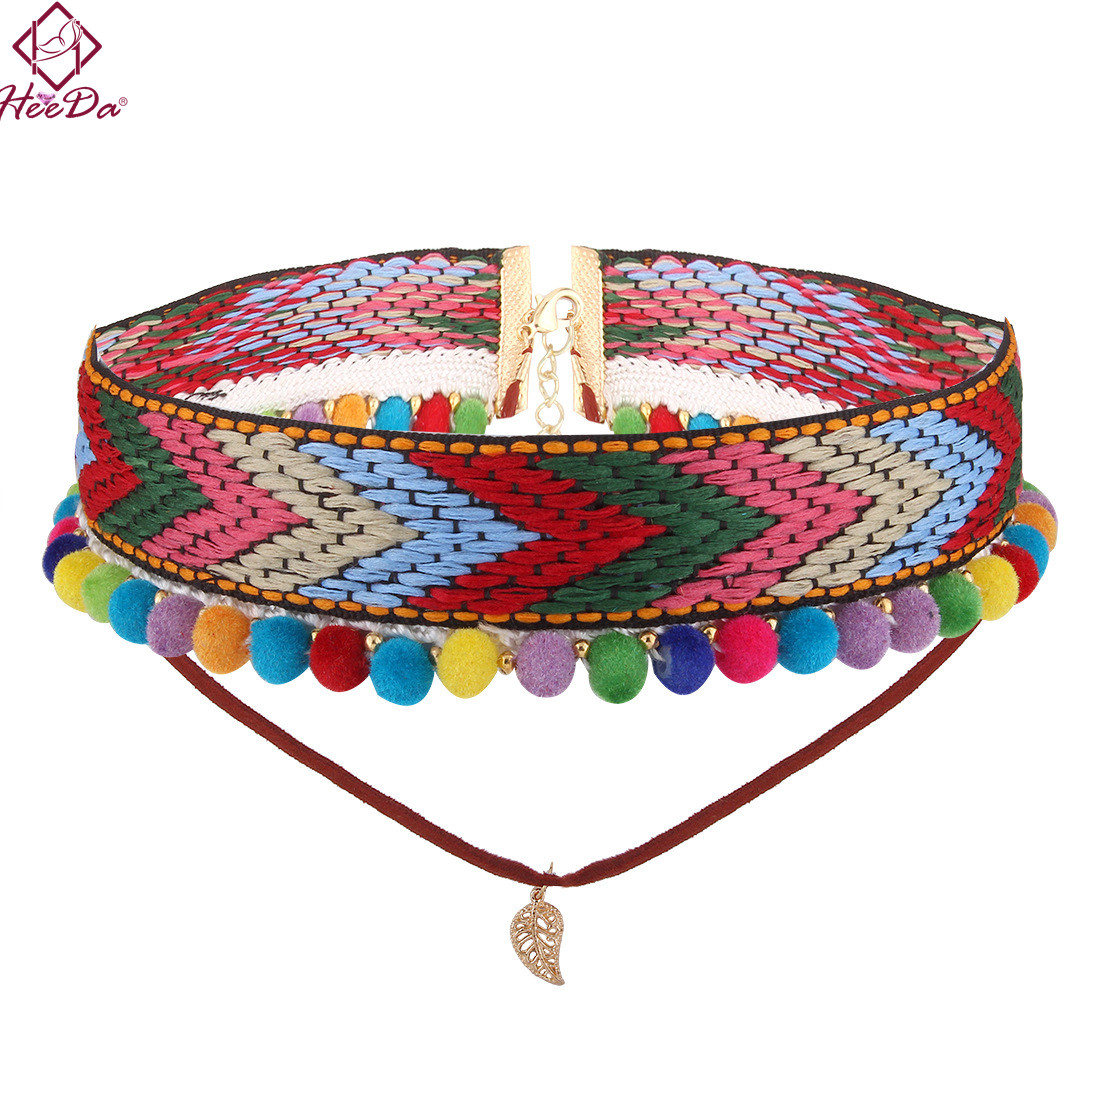 Heeda 2018 New Fashion Boho Personality Colorful Pompon Pendant Necklace Retro Style Ethnic Elegant Handcraft Woven Cloth Choker